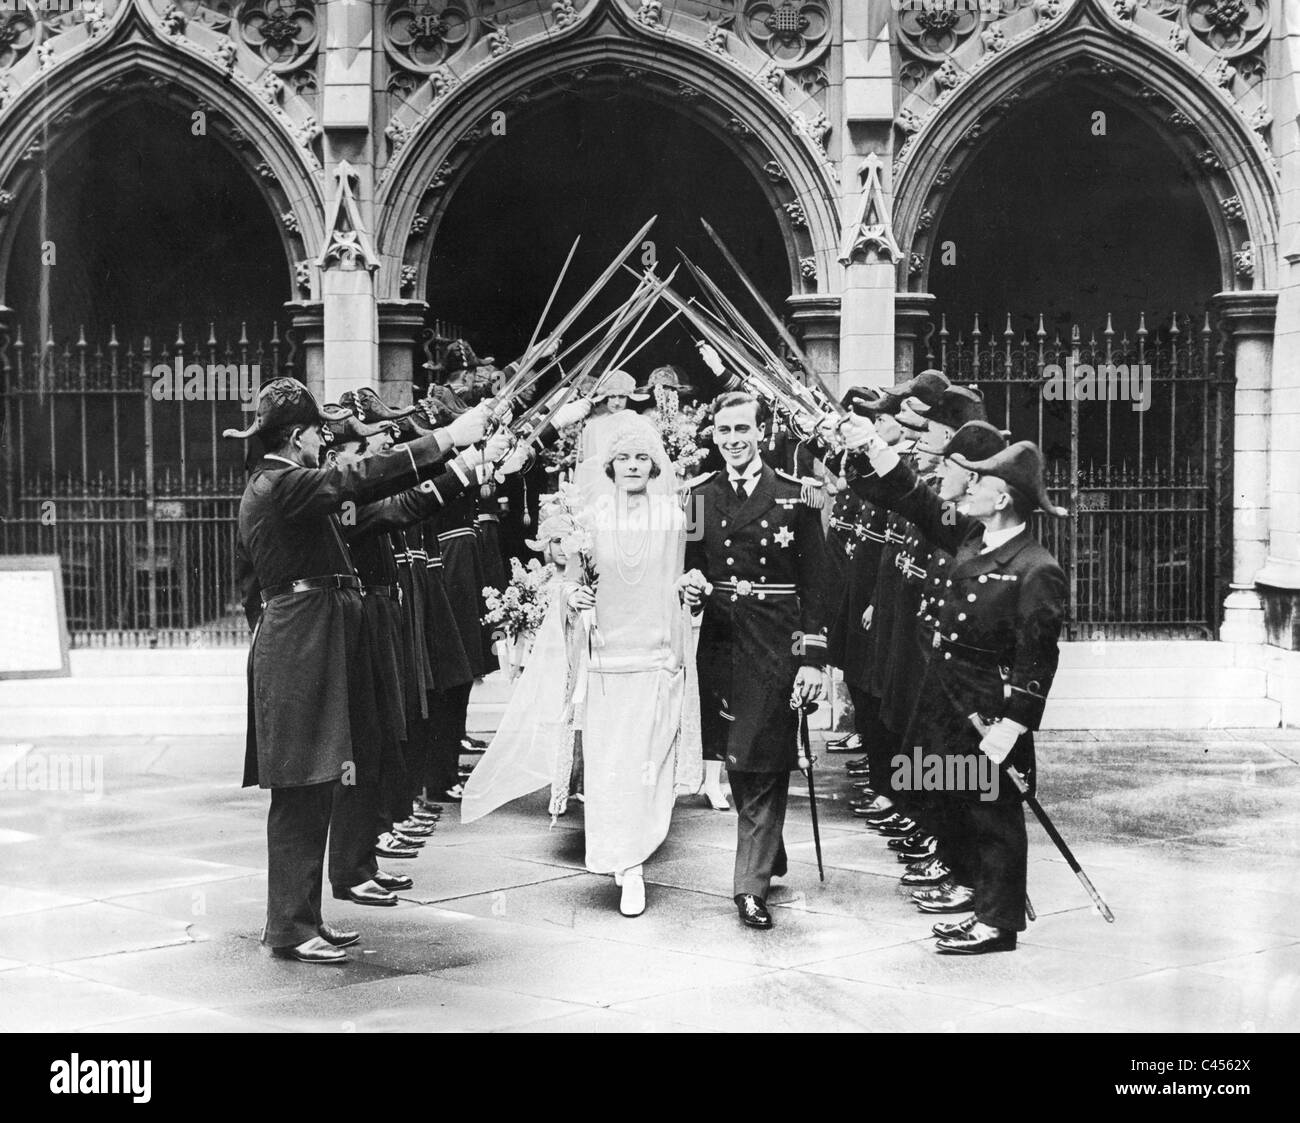 Lord Louis Mountbatten at the wedding with Edwina Ashley, 1922 - Stock Image